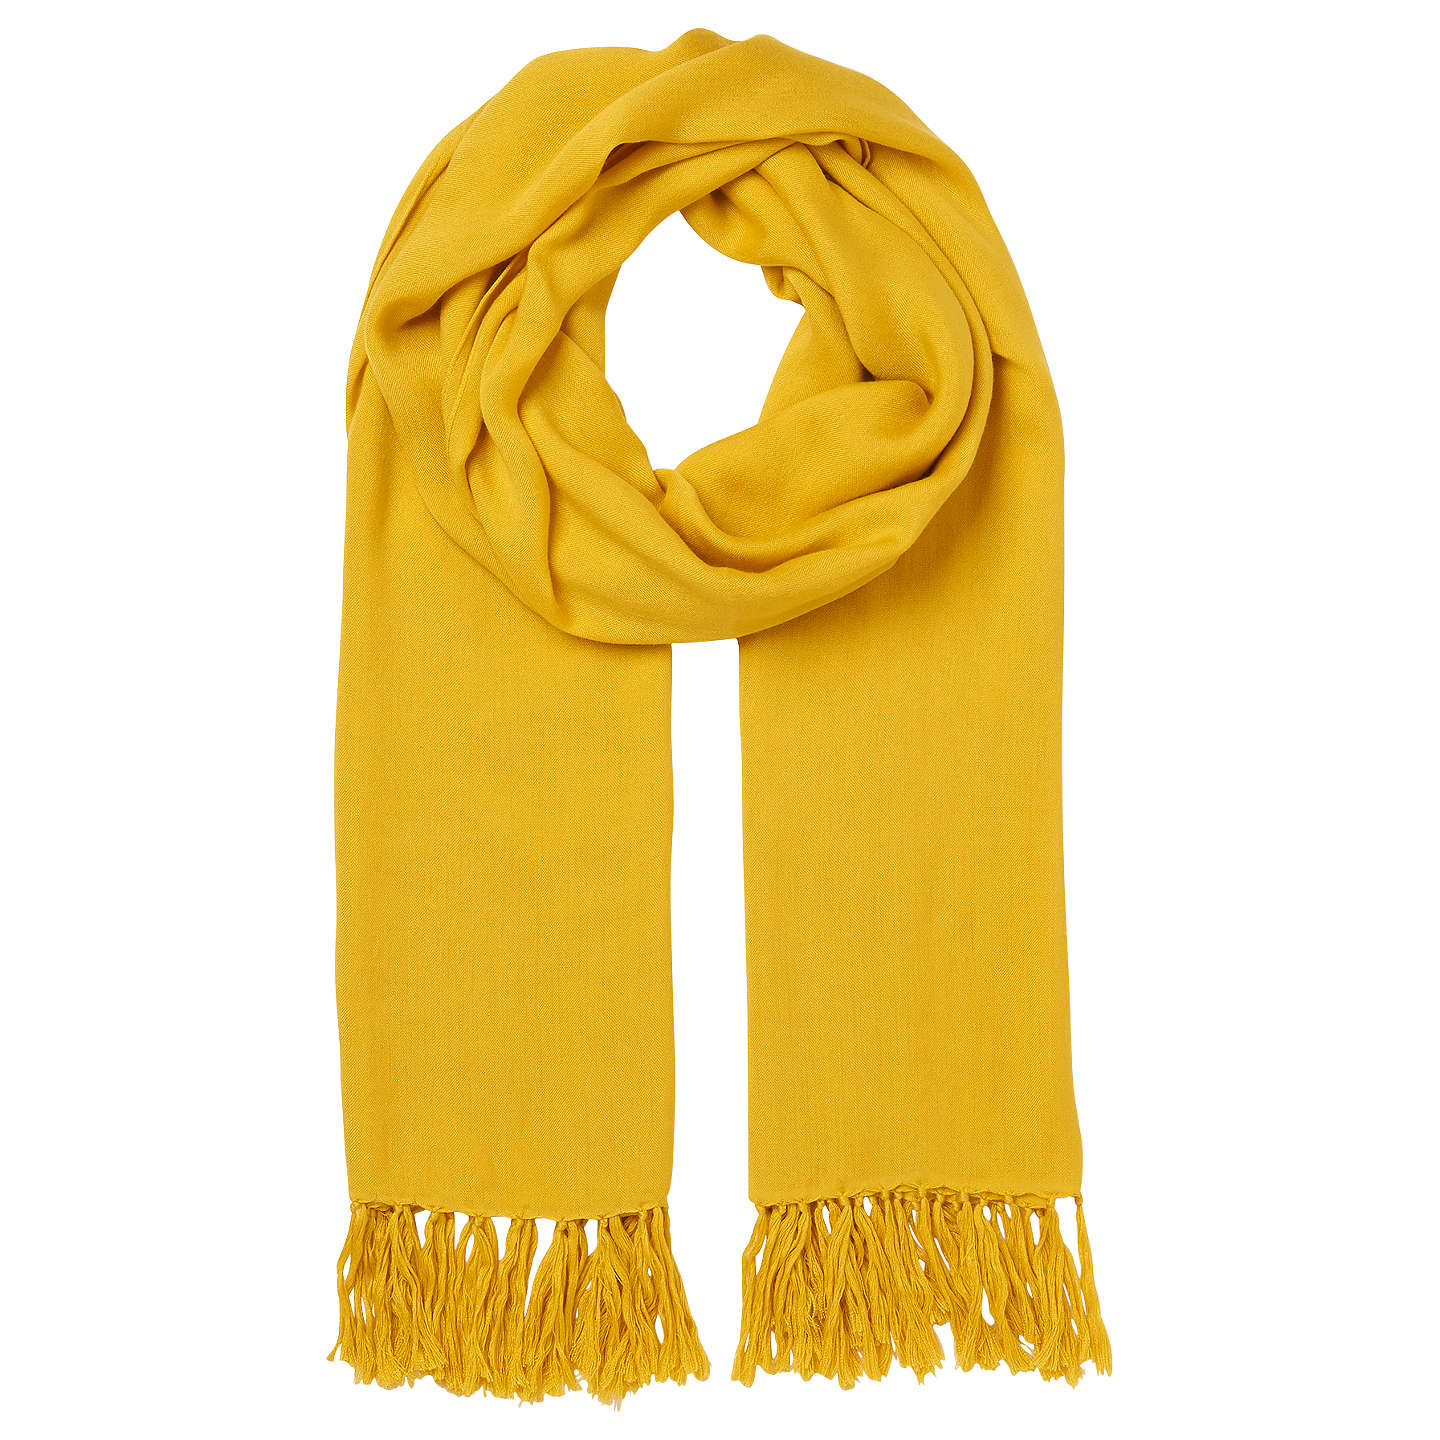 BuyWhistles Plain Woven Scarf, Yellow Online at johnlewis.com